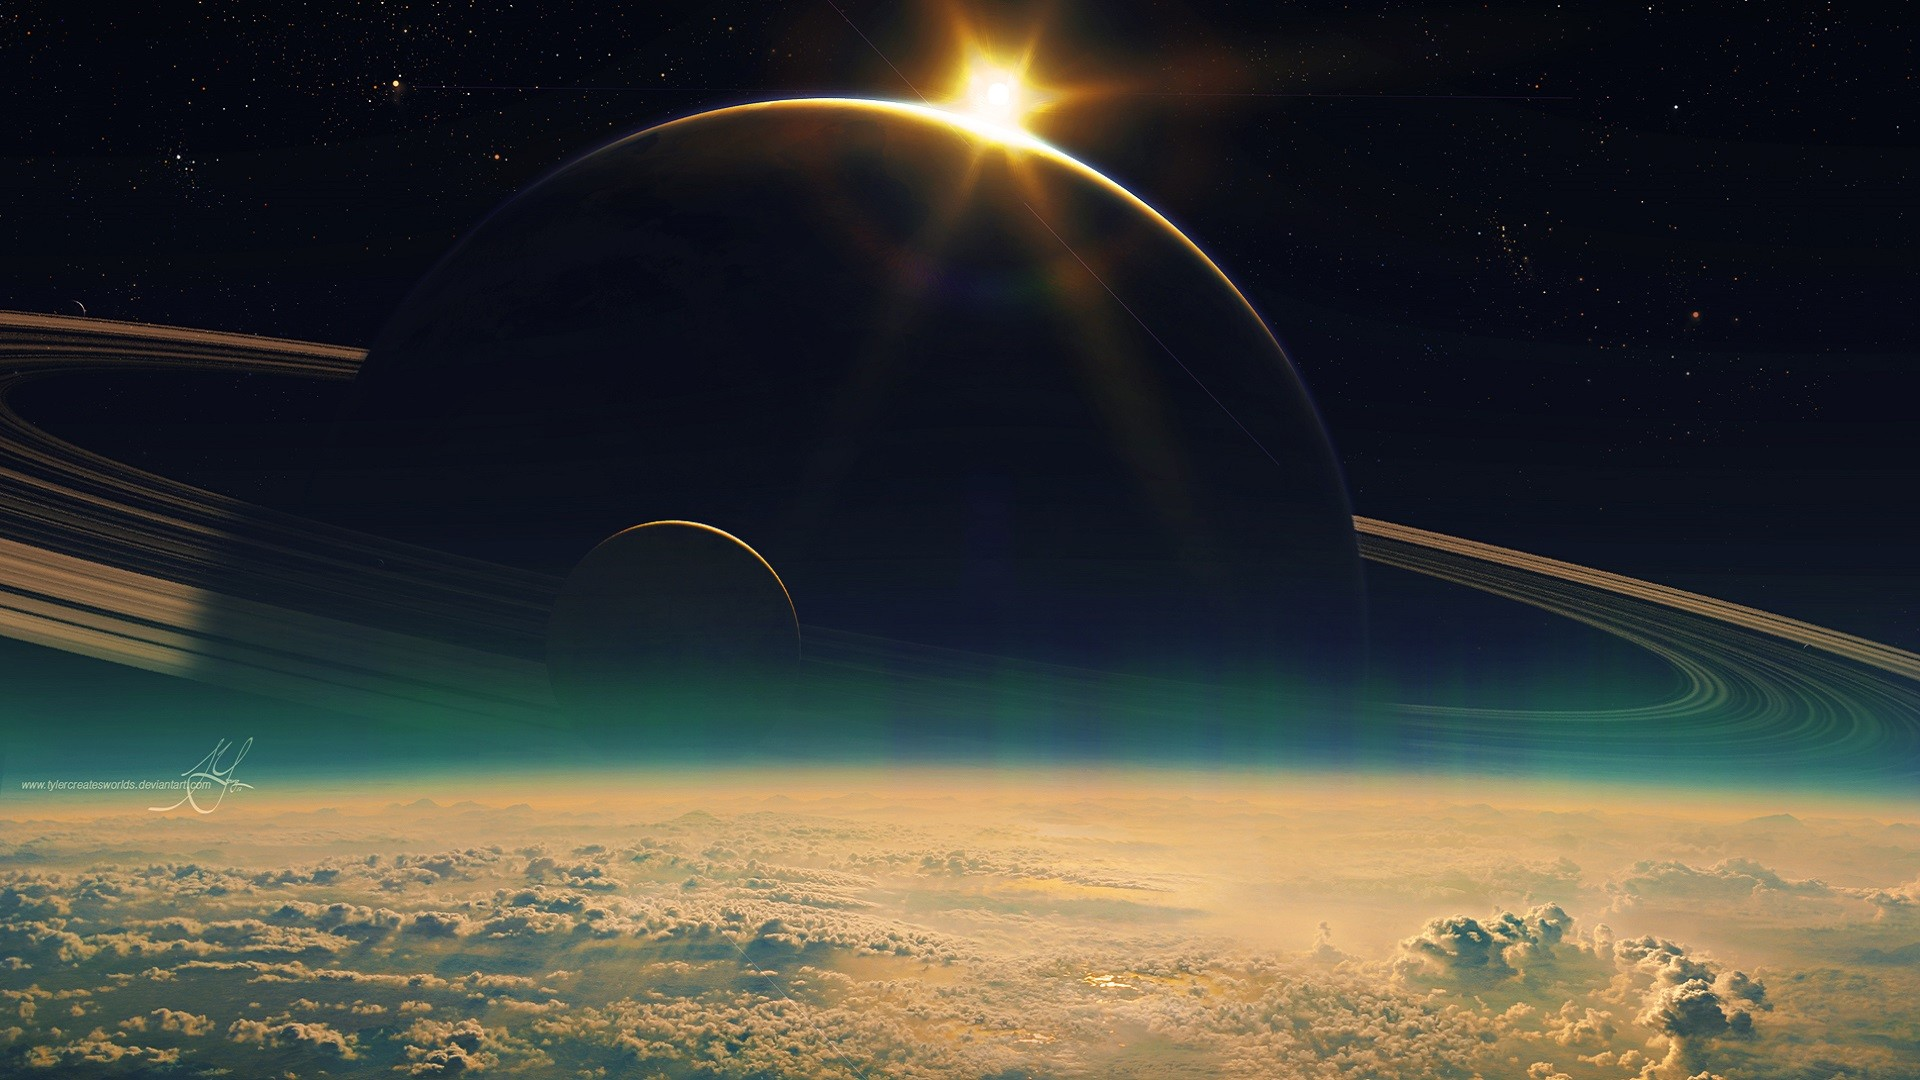 HD Space Wallpapers 1080p 1